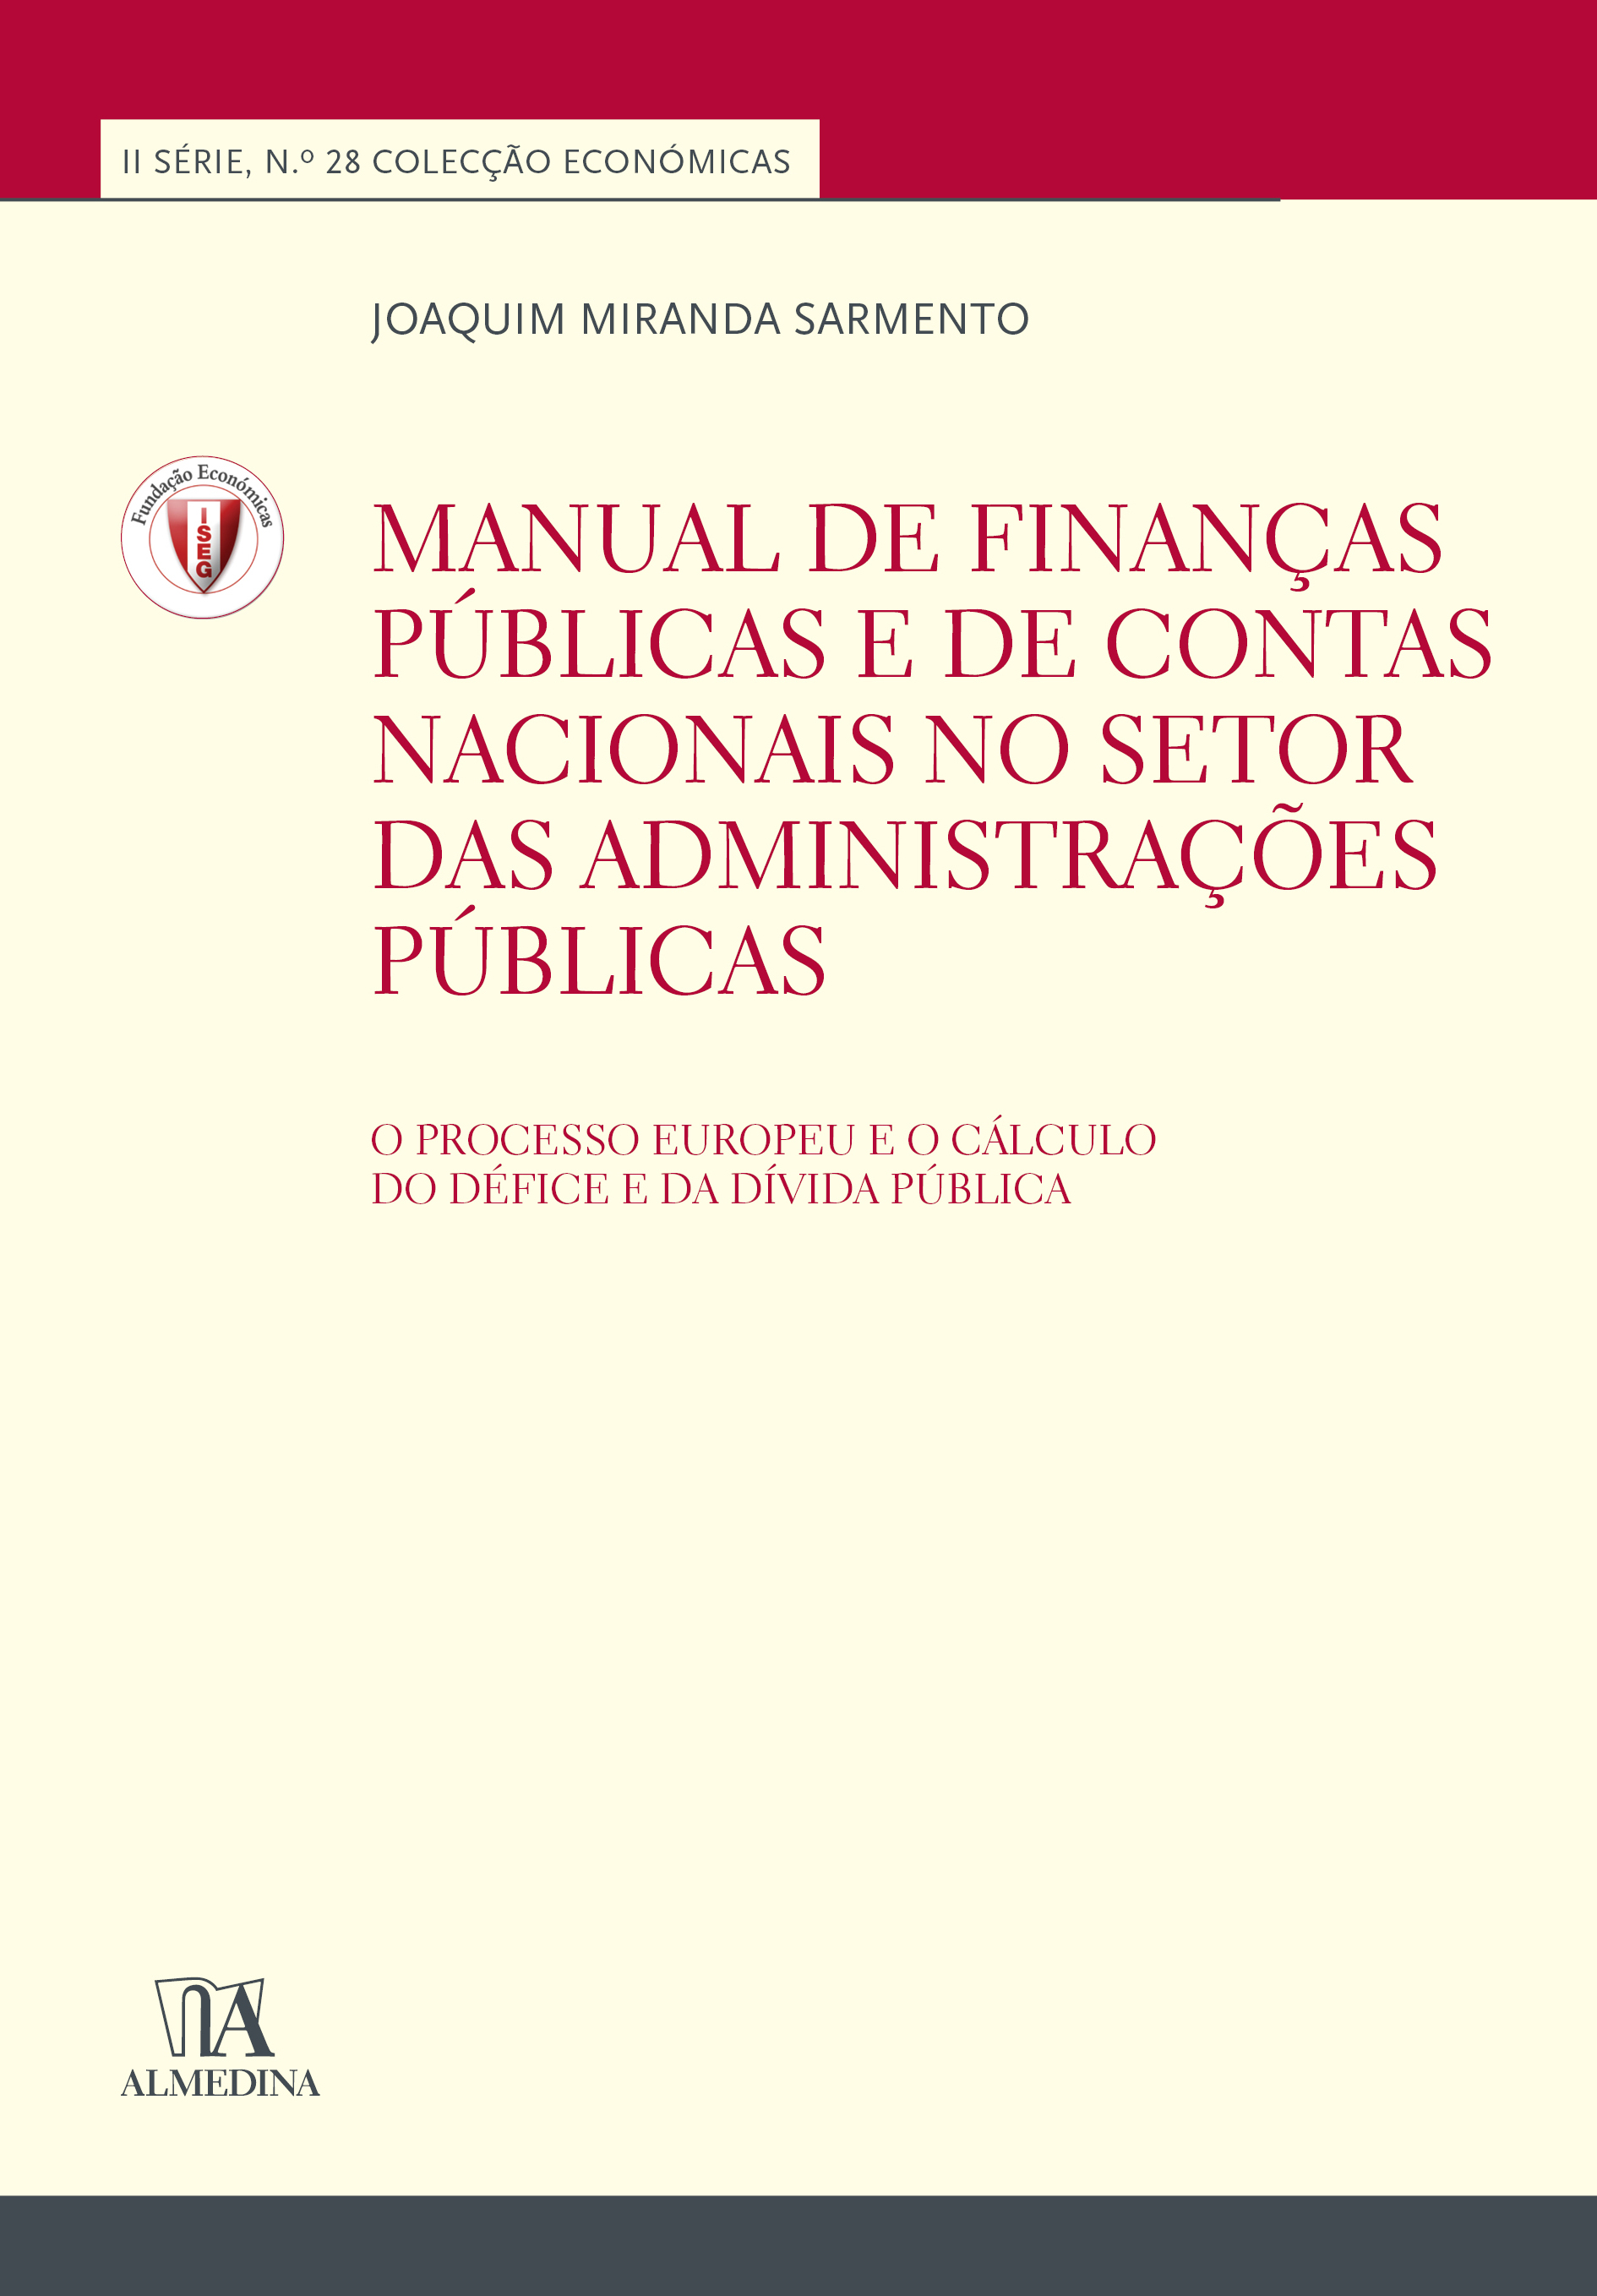 manual-de-financas-publicas_28_frente15739